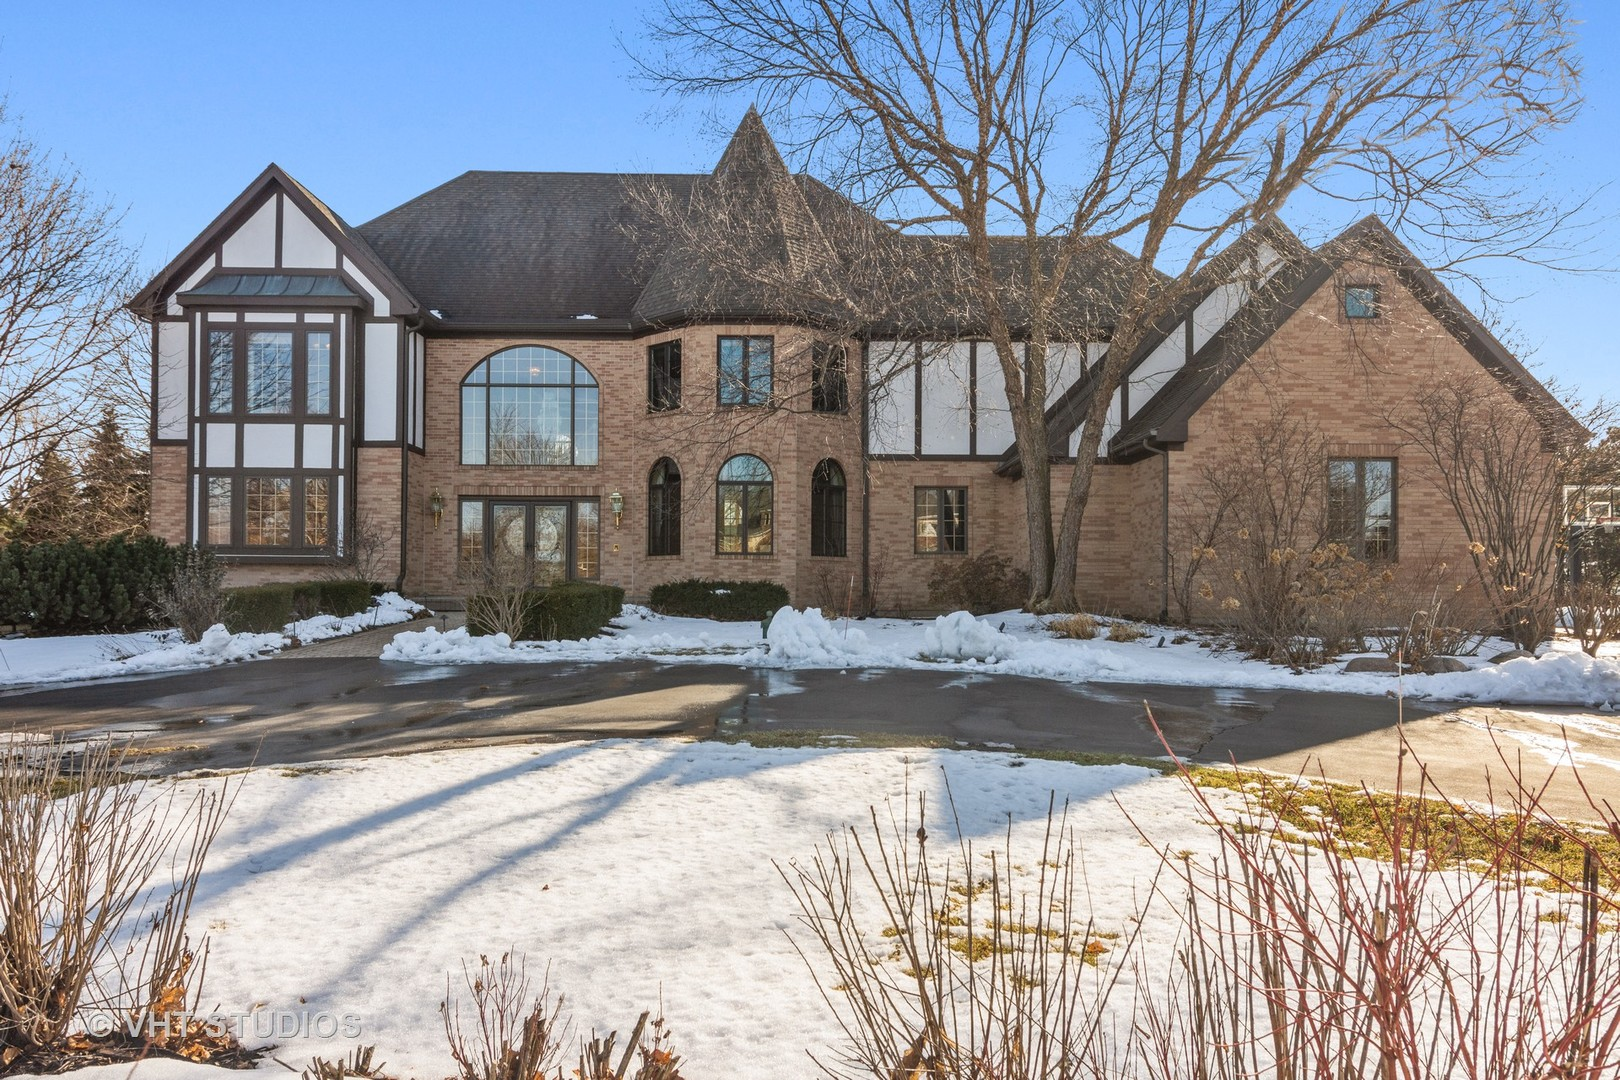 1 BEACON HILL Drive, South Barrington in Cook County, IL 60010 Home for Sale